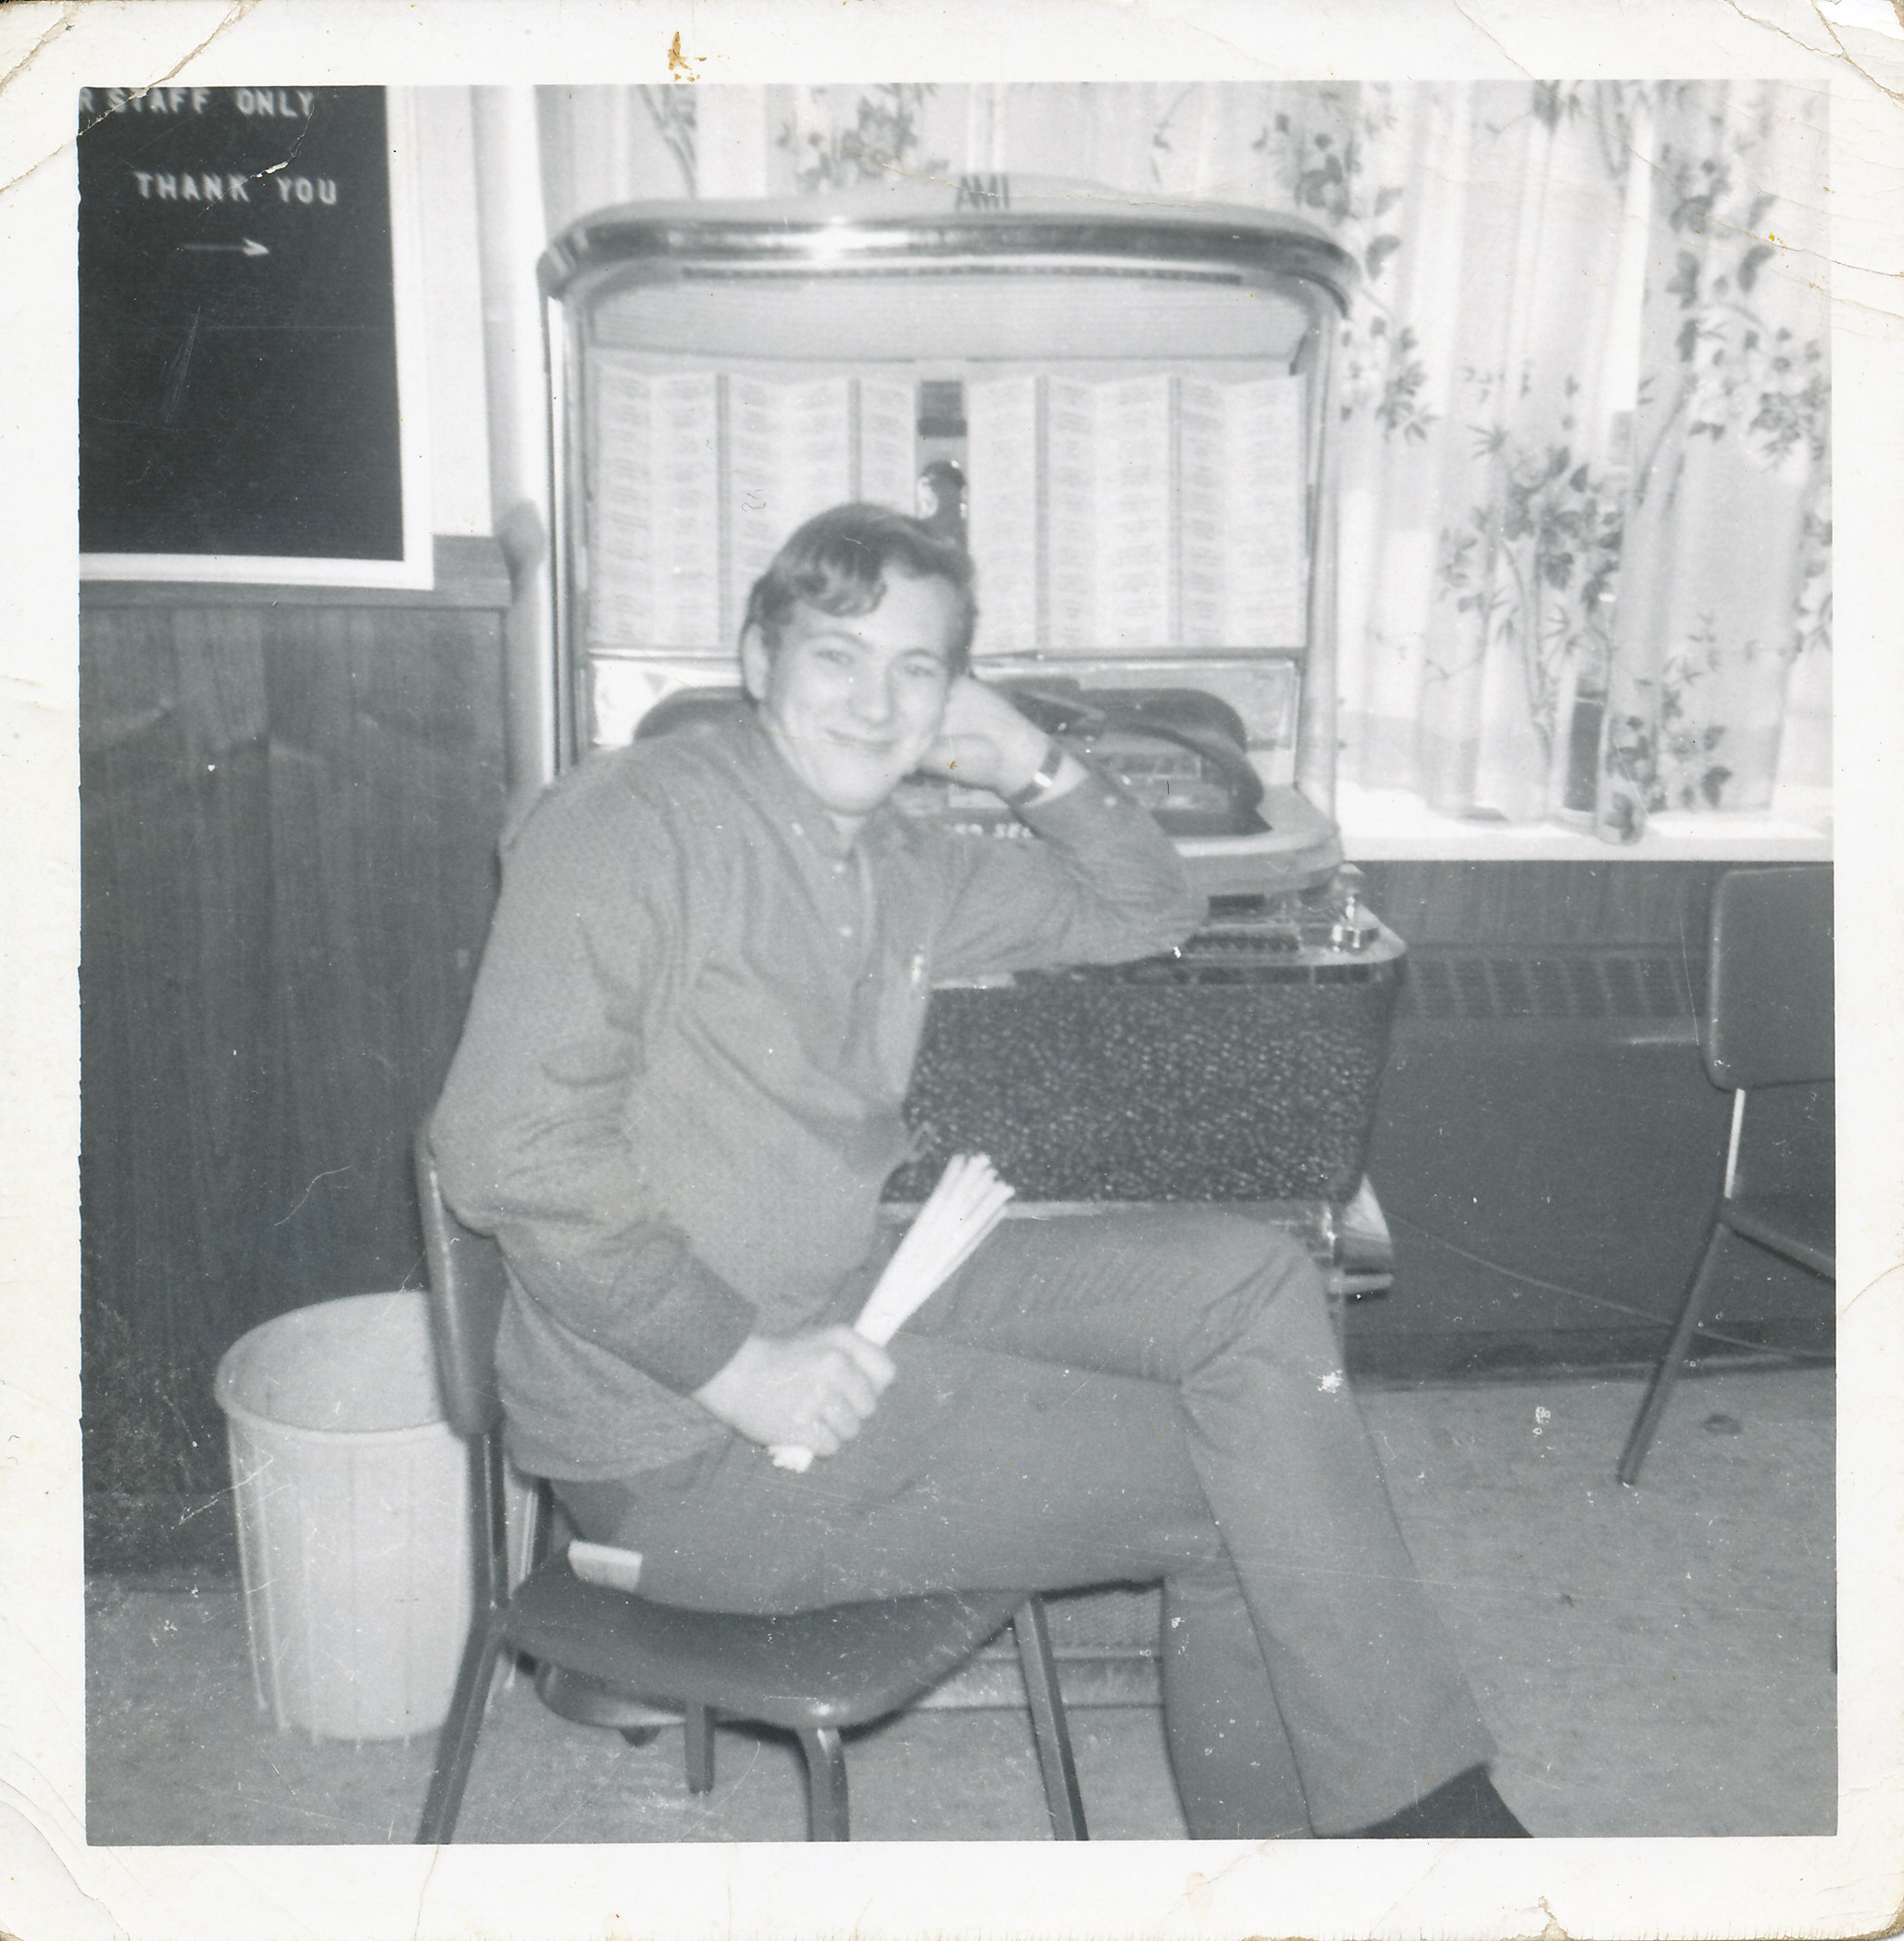 young man sitting on chair in front of a jukebox